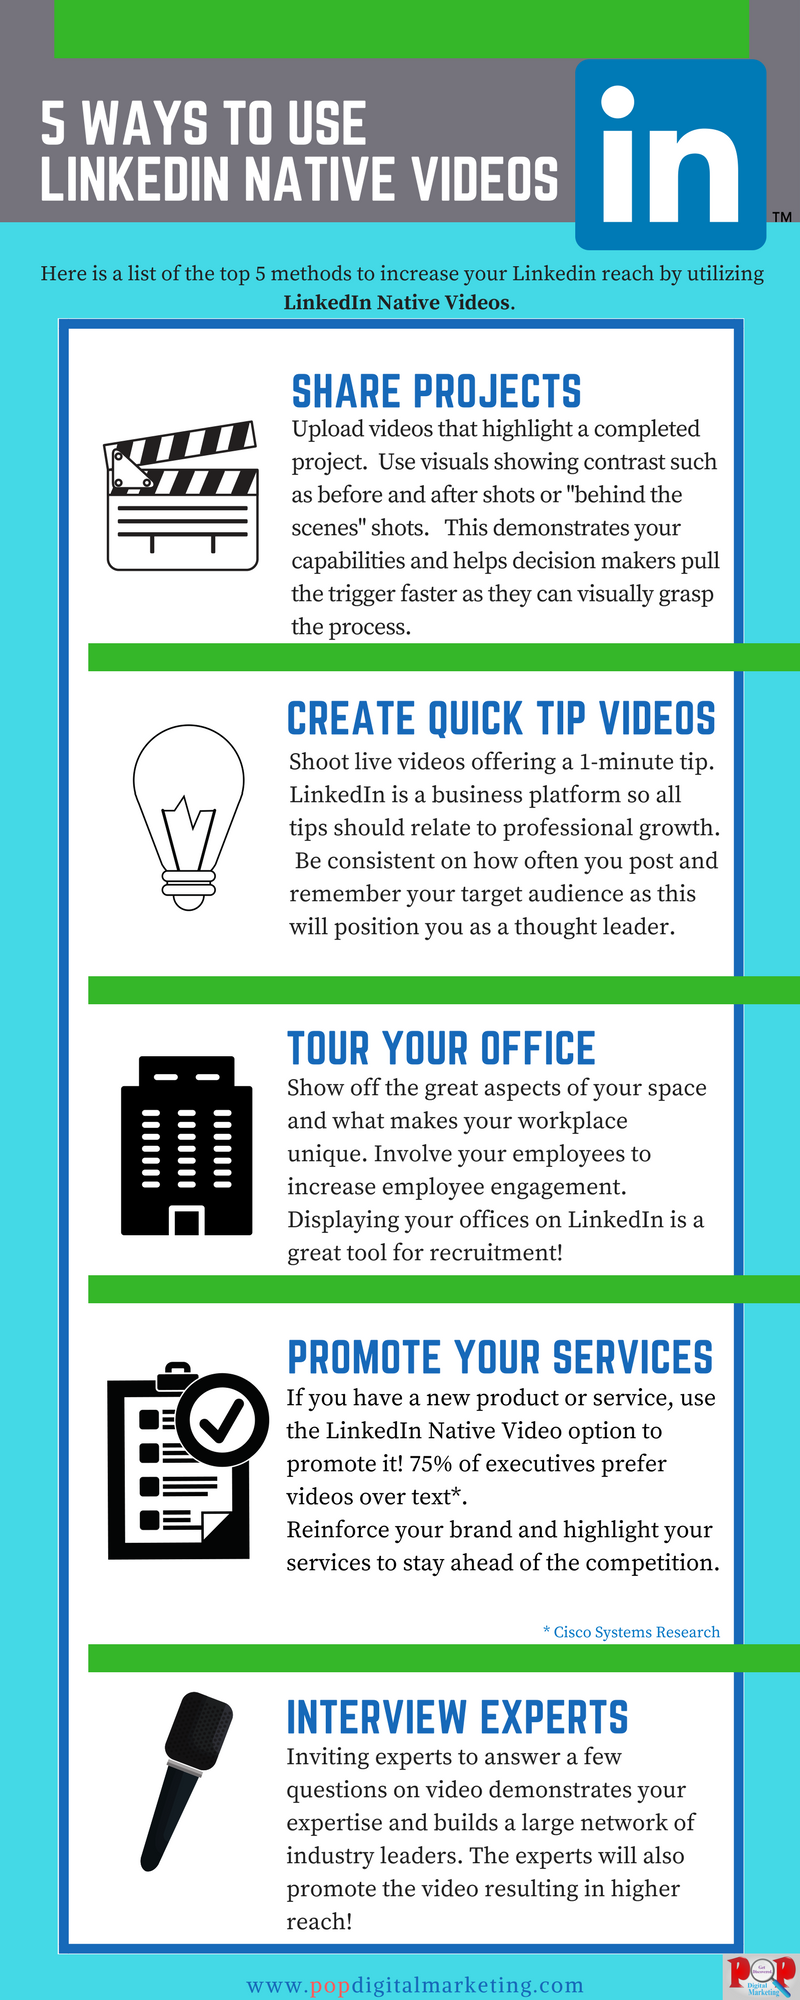 LinkedIn Video Infographic